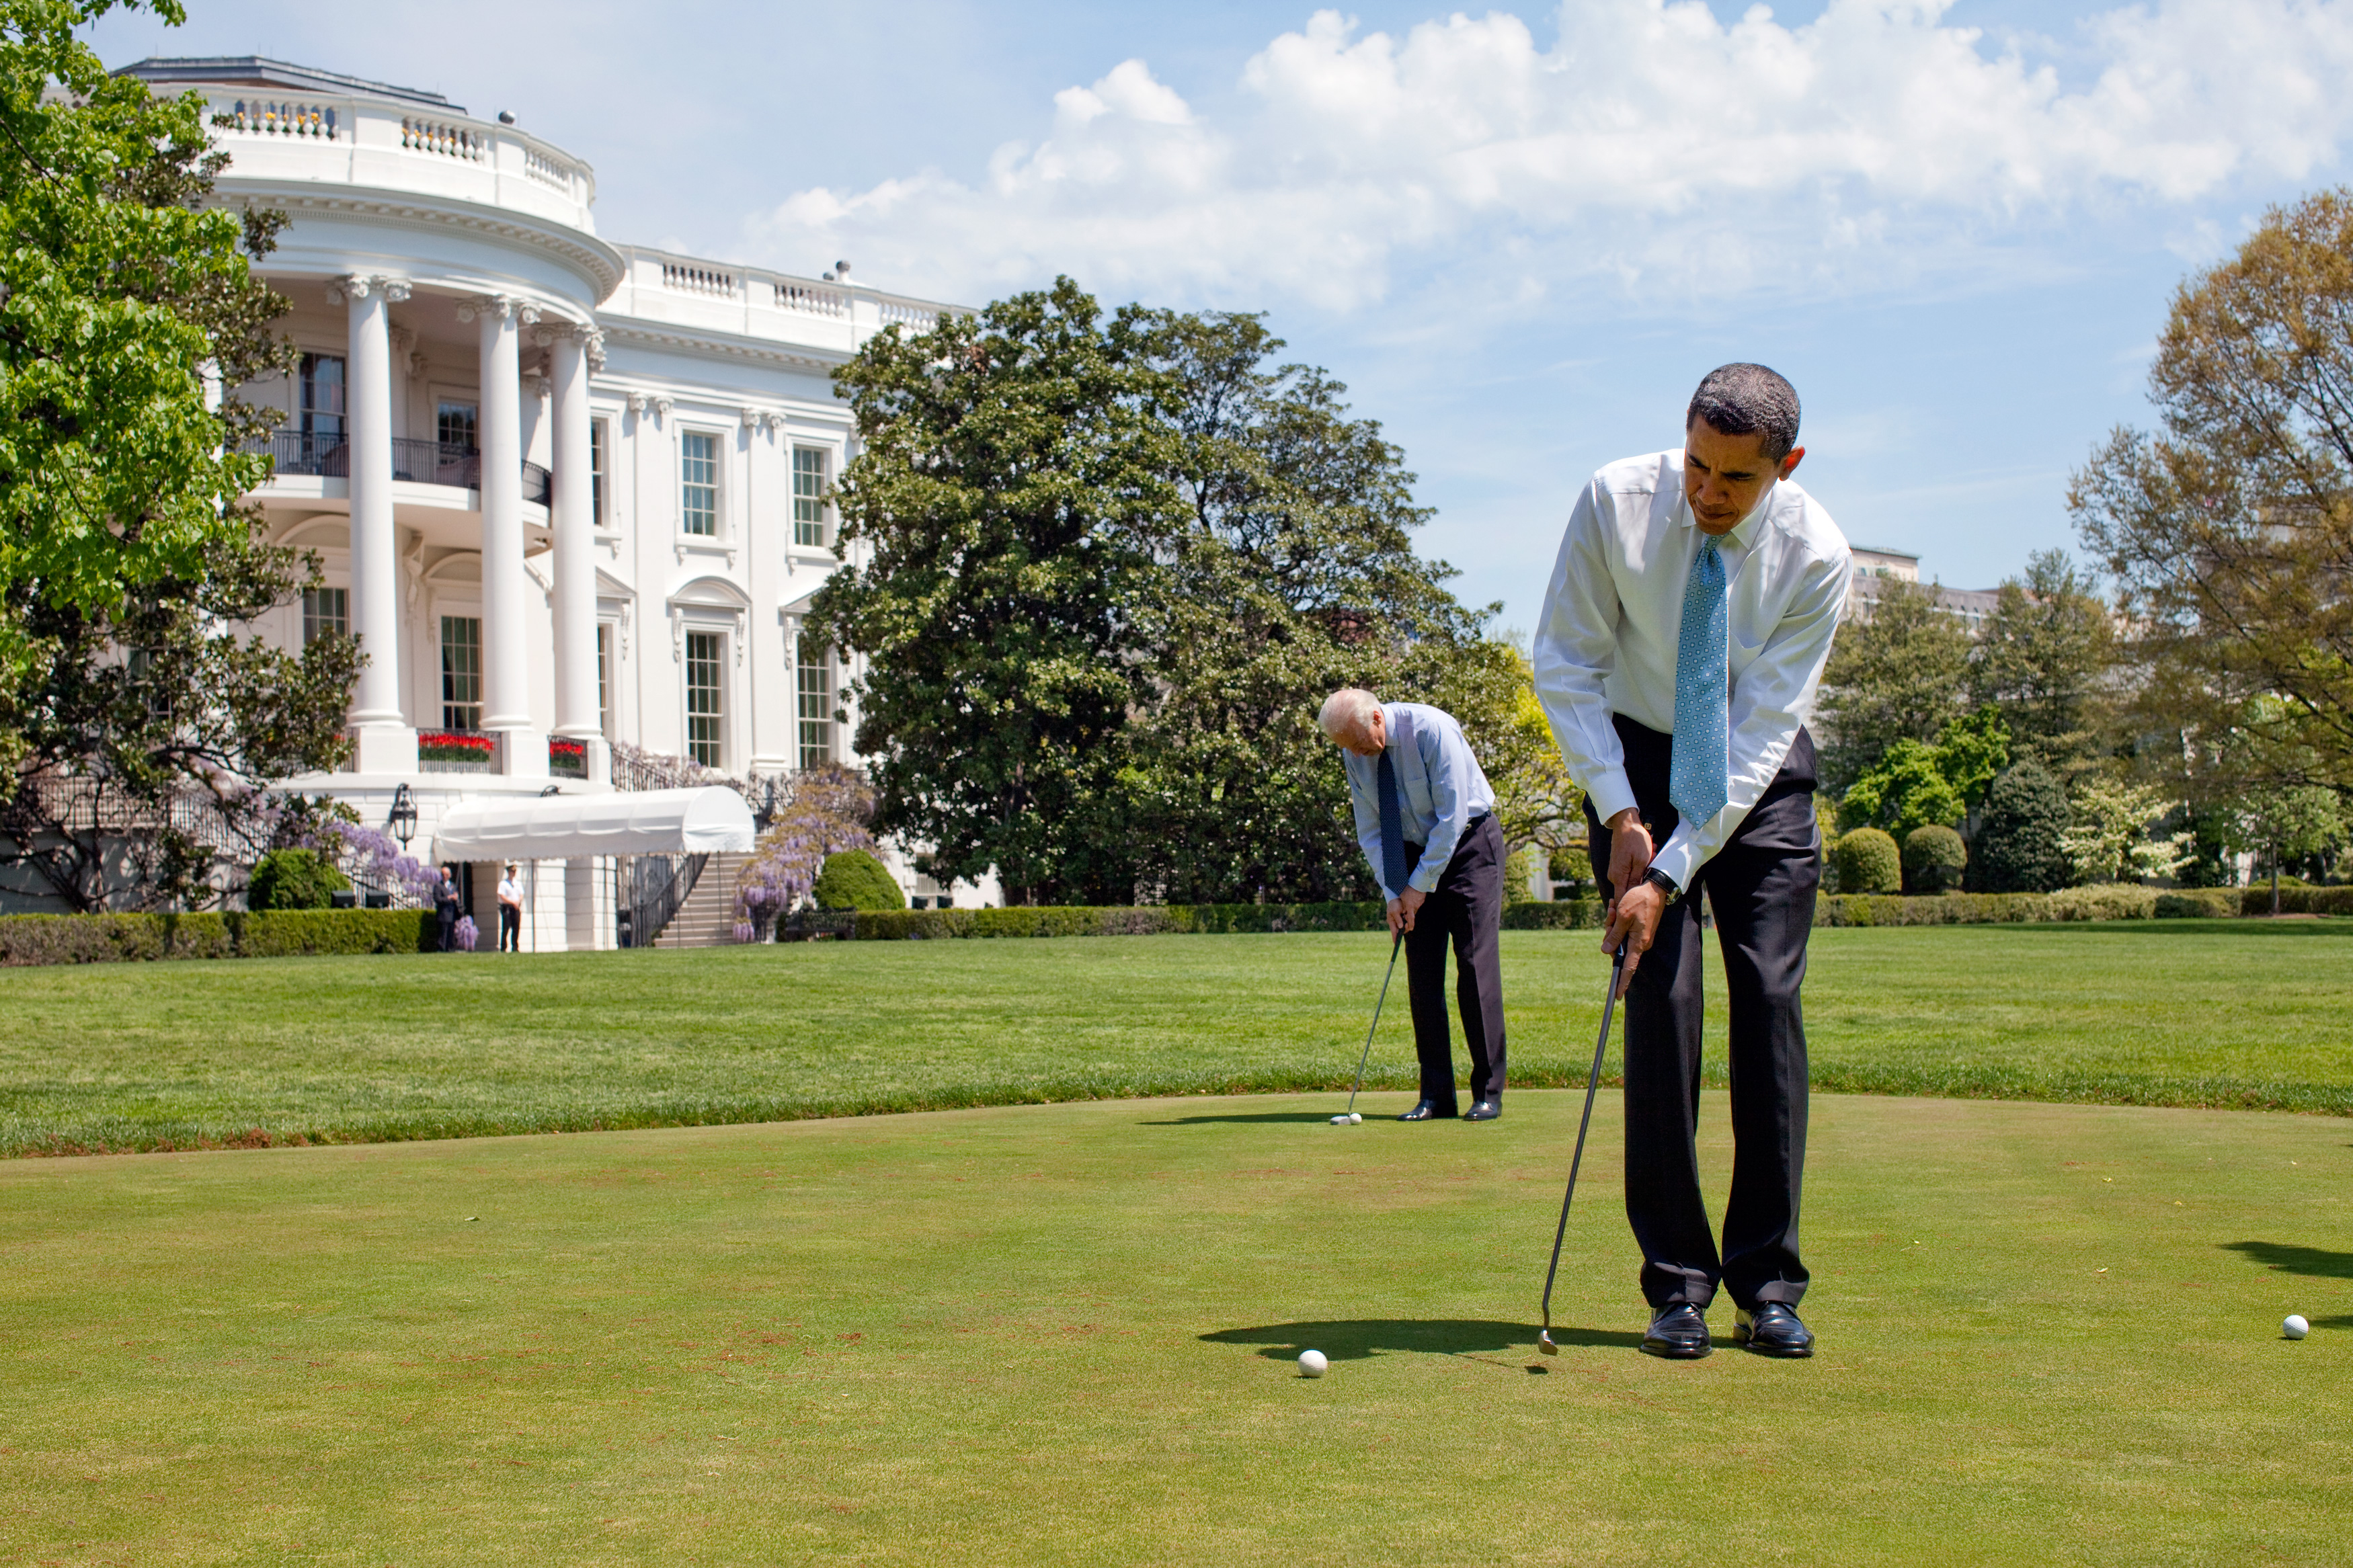 Brack Obama; Joe Biden; White House; Sun; Golf